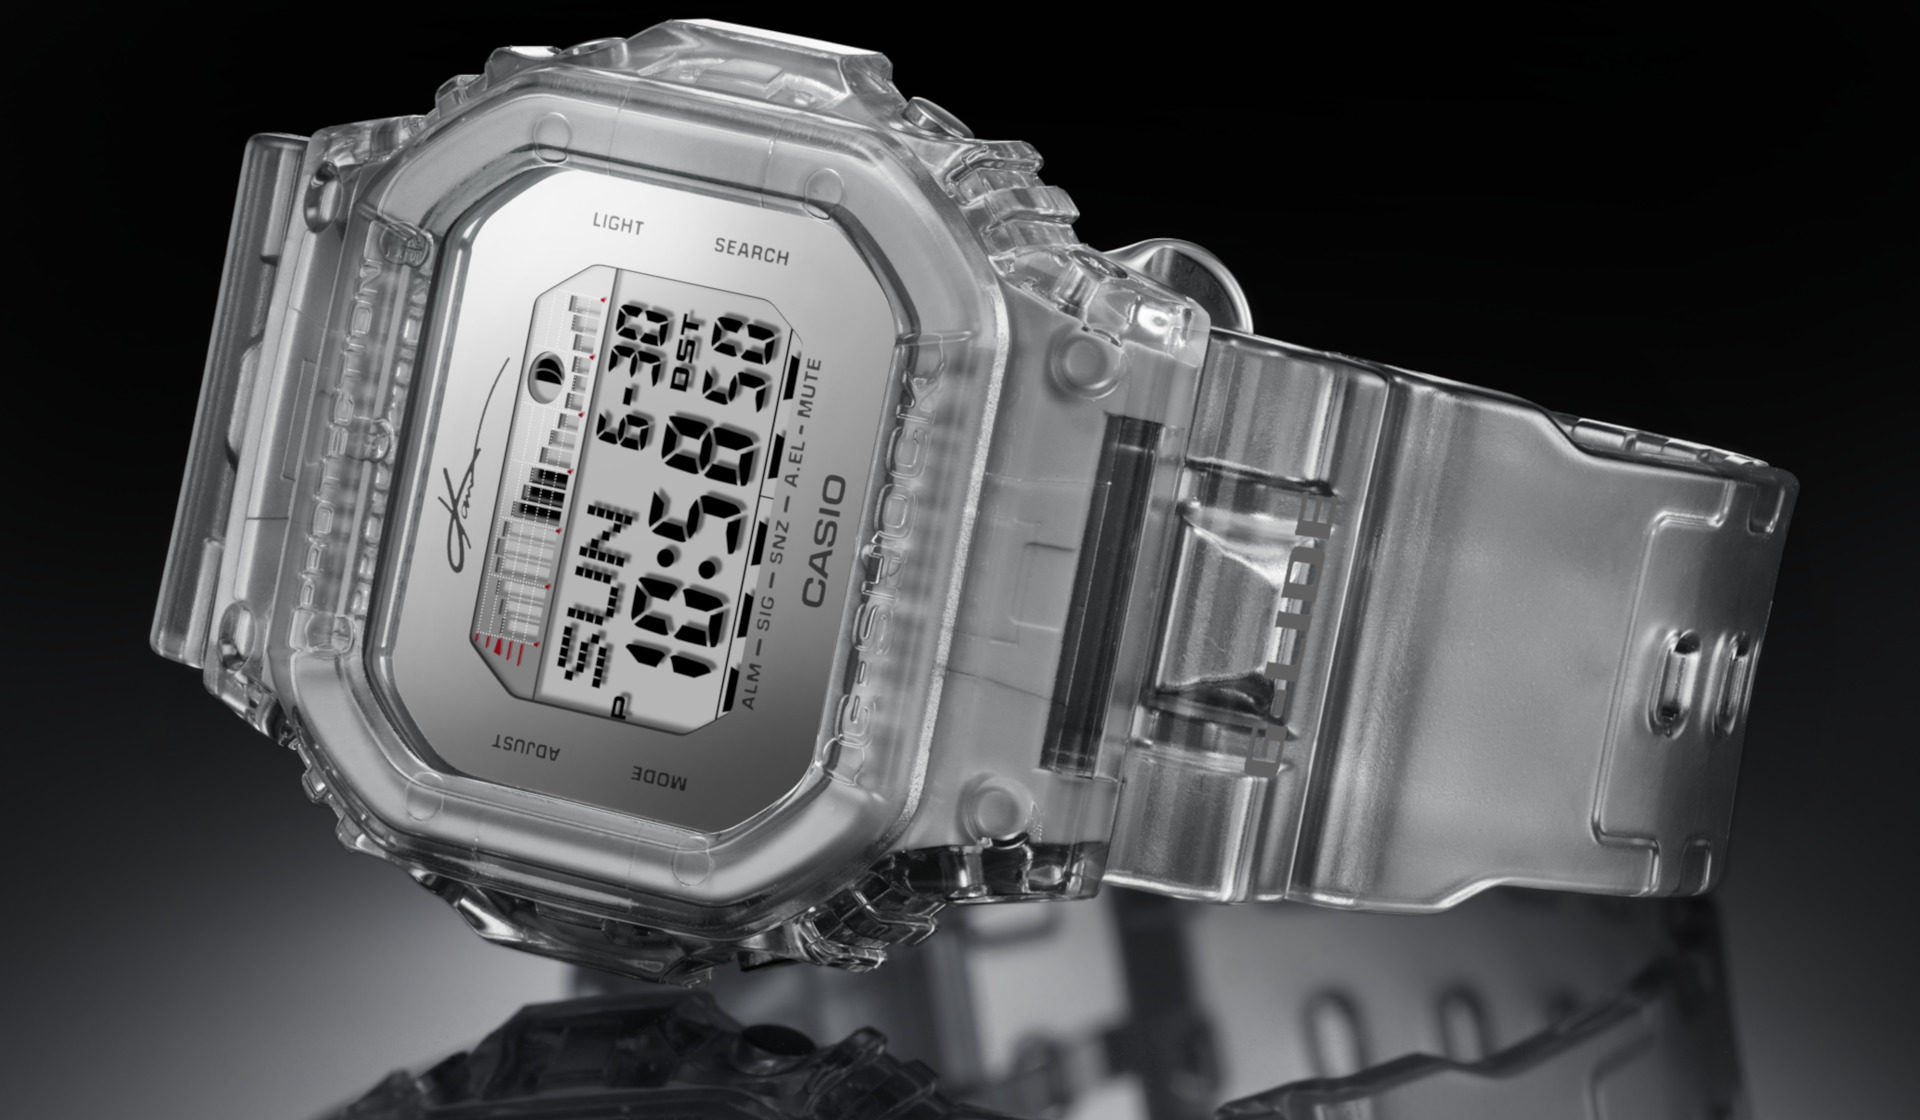 We may not be into surfing but damn, this clear GLX-5600KI G-Shock is cool